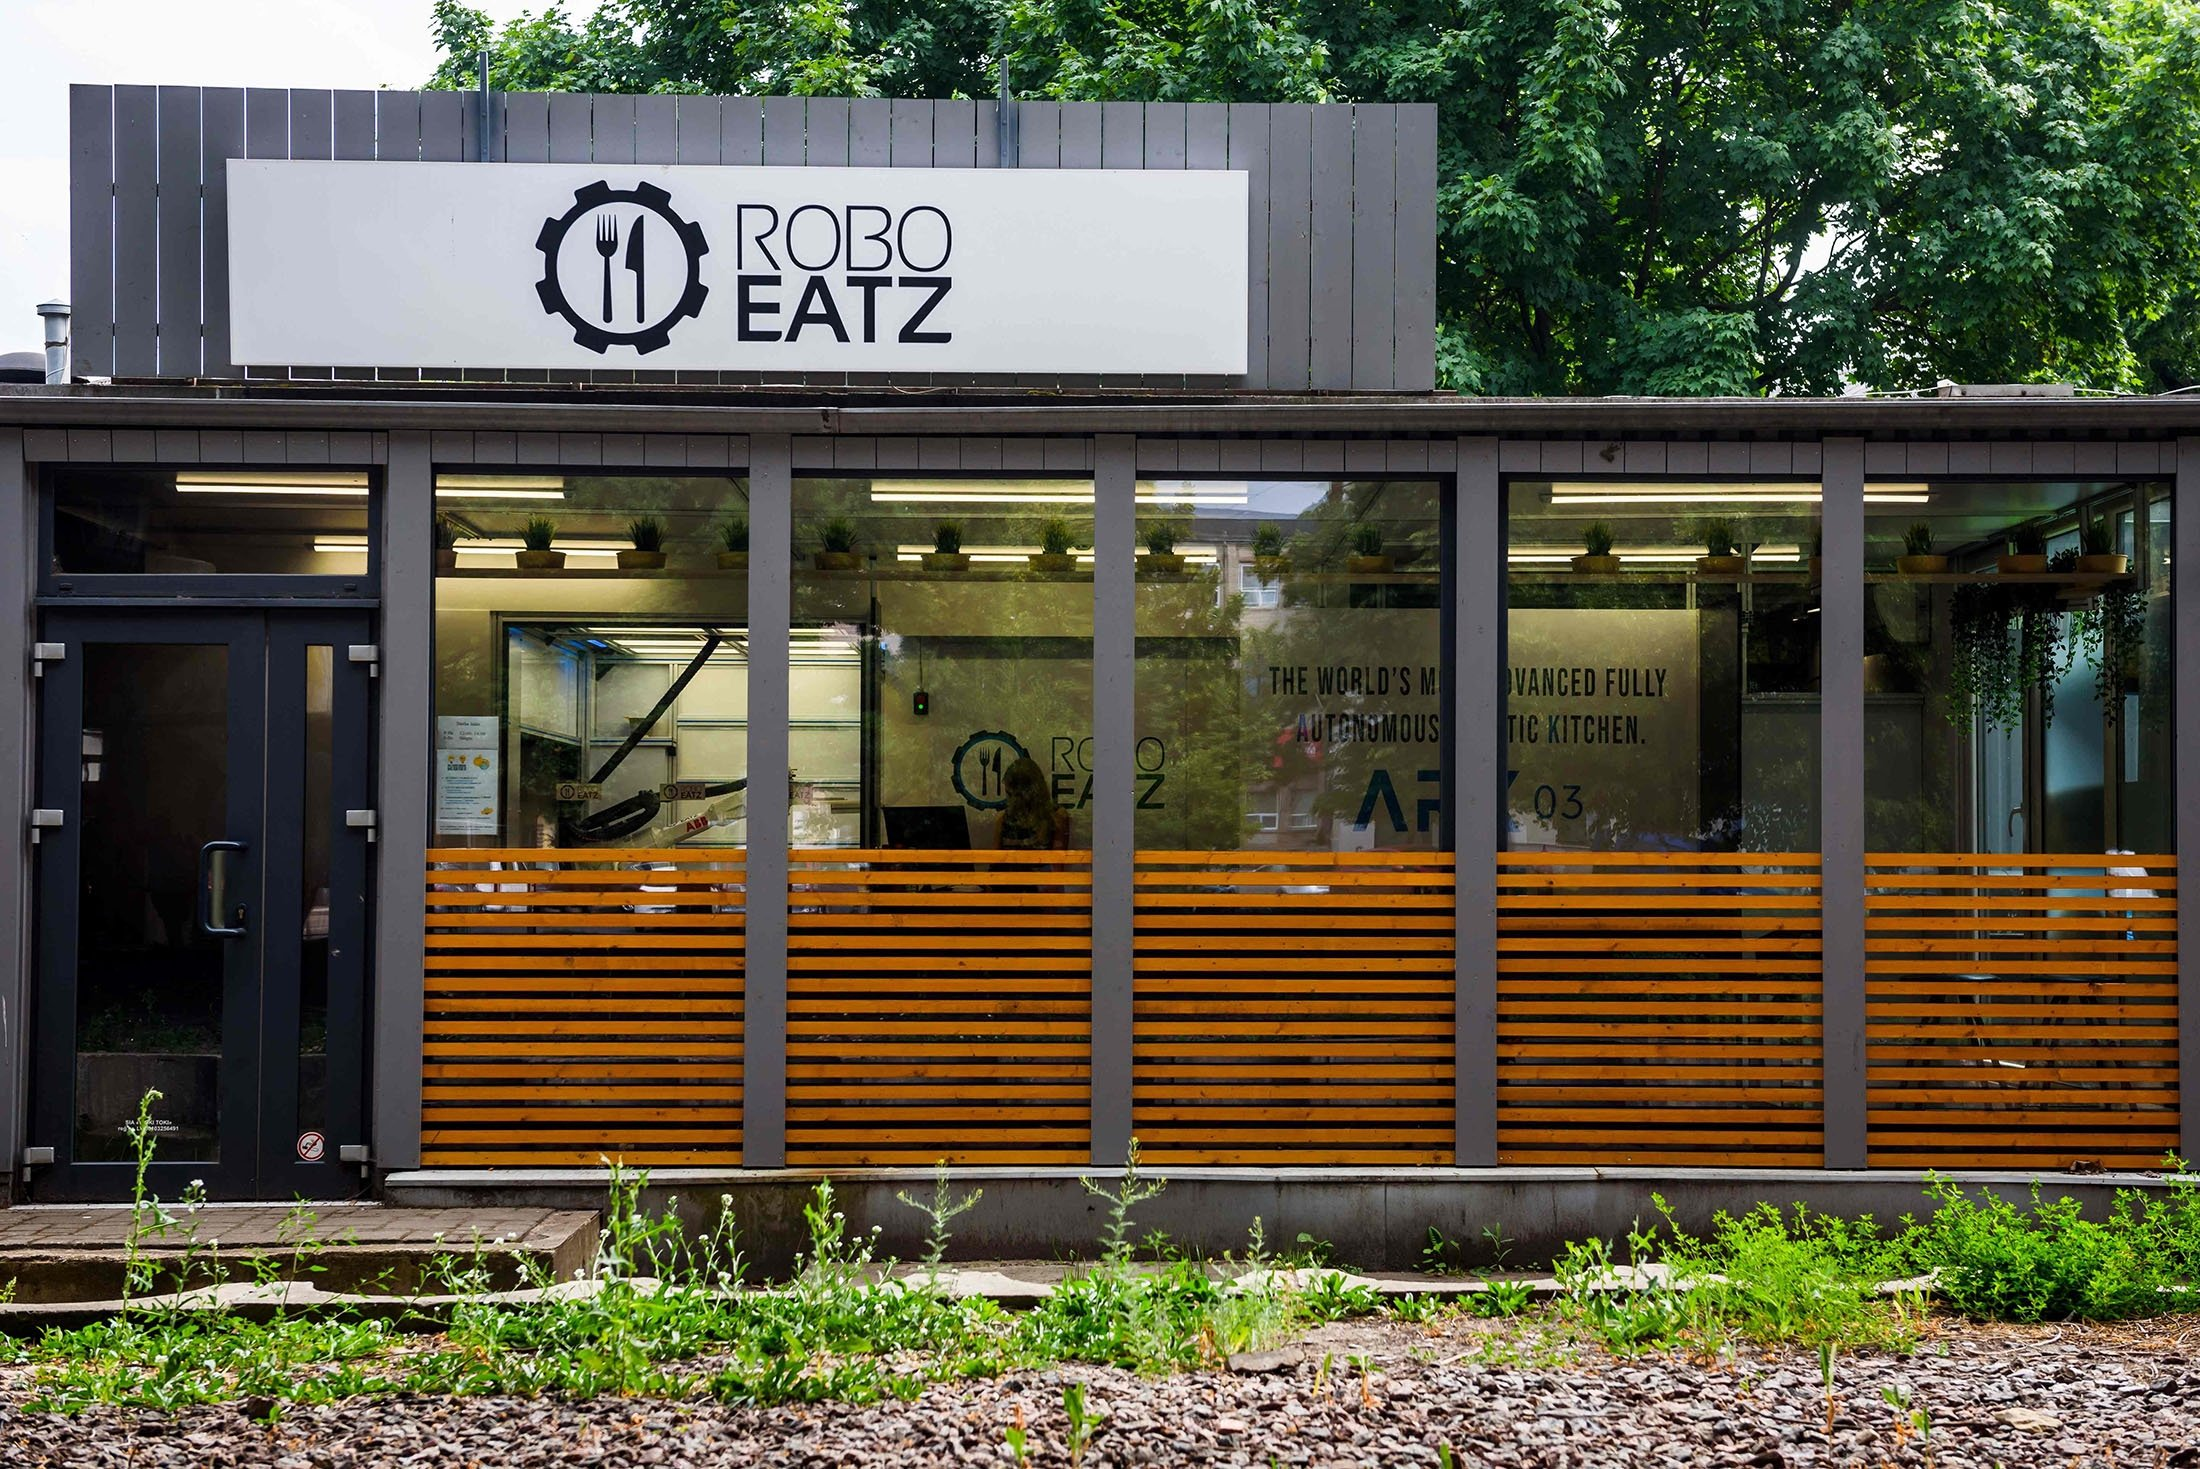 An exterior view of the Roboeatz eatery with the company